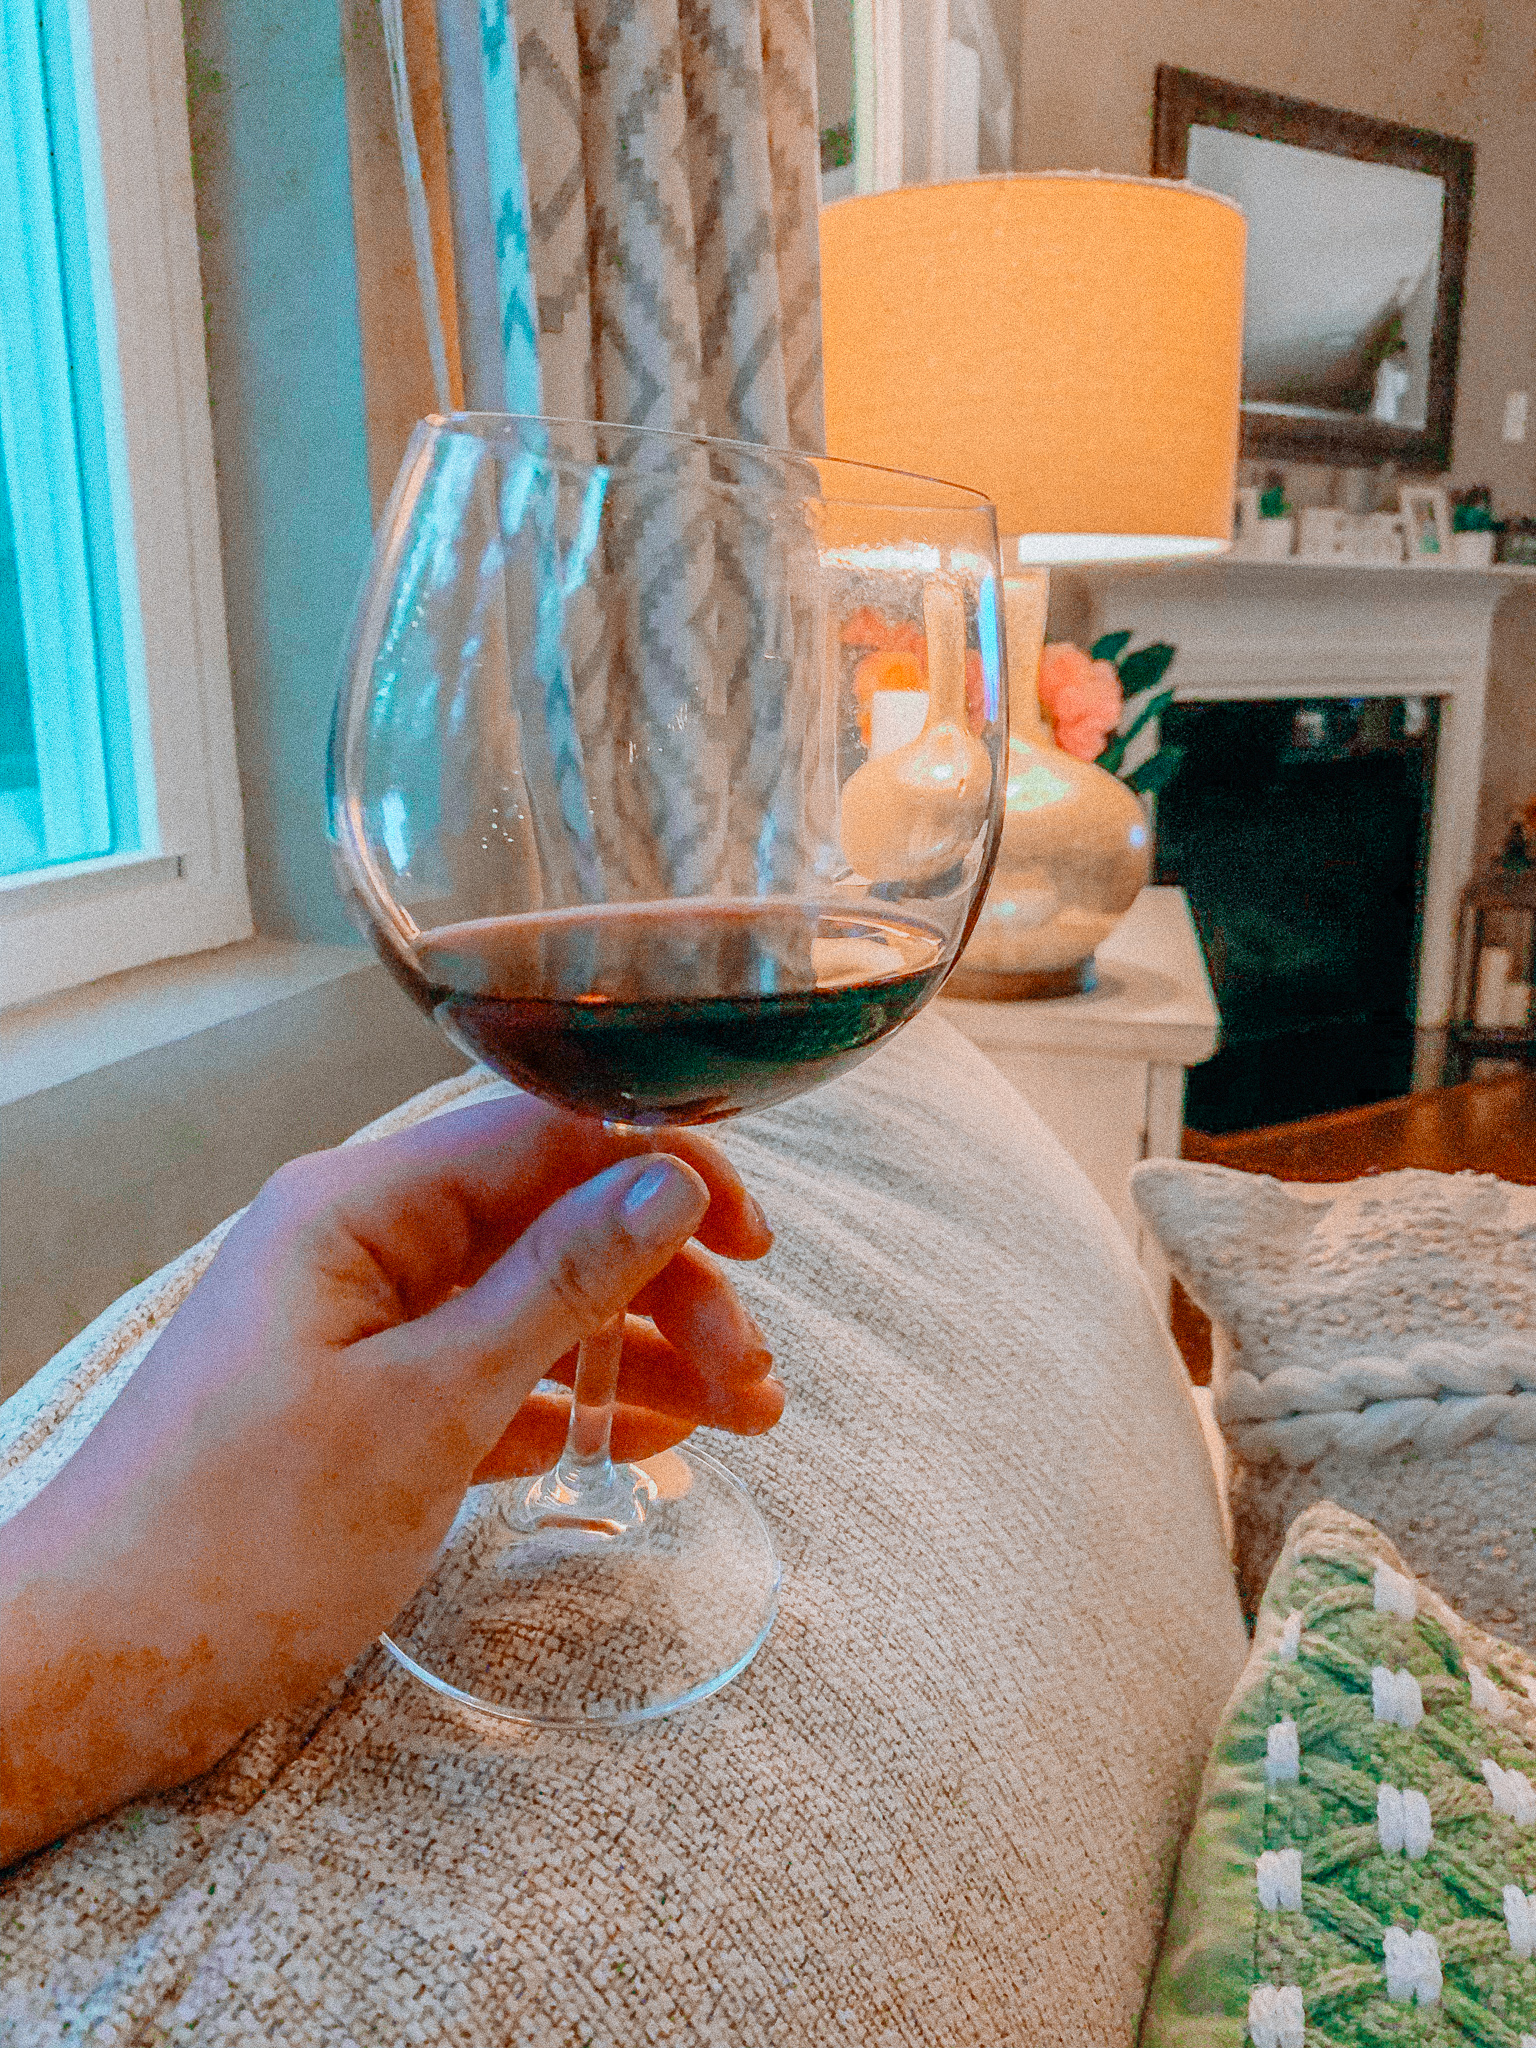 handmaids tail, relax, home, bota boxed wine, cab, relax Wednesday